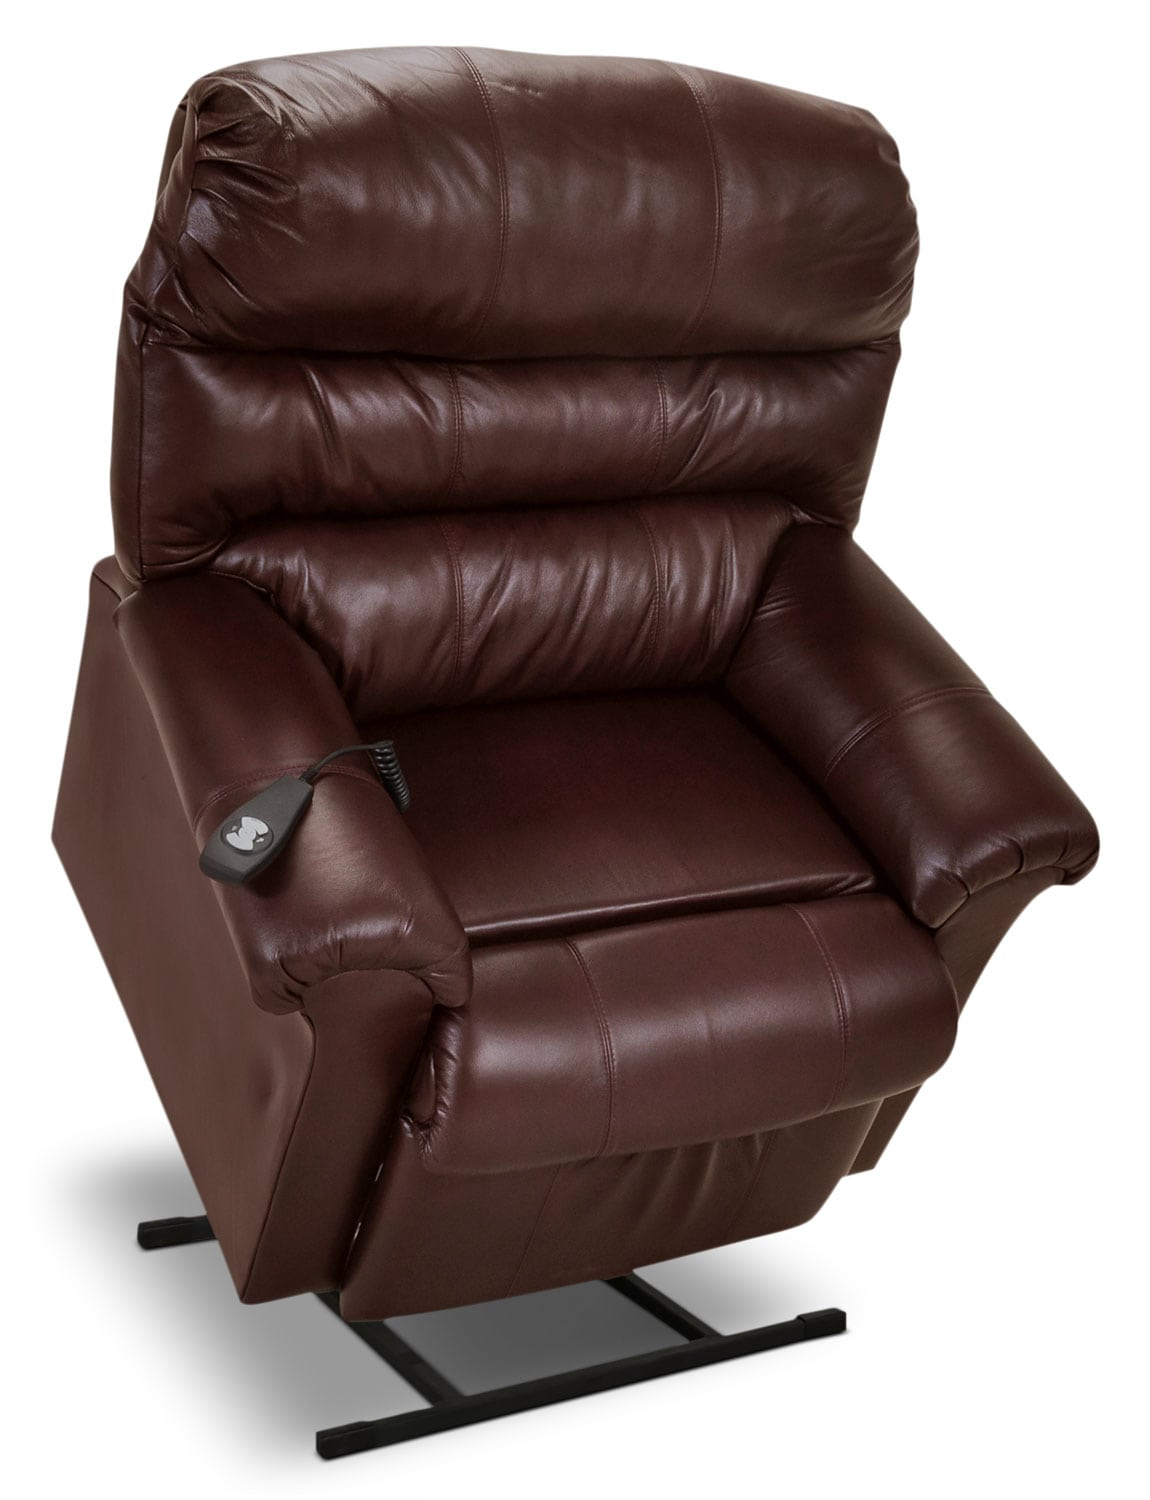 Living Room Furniture - Genuine Leather 3-Position Power Lift Recliner – Brown